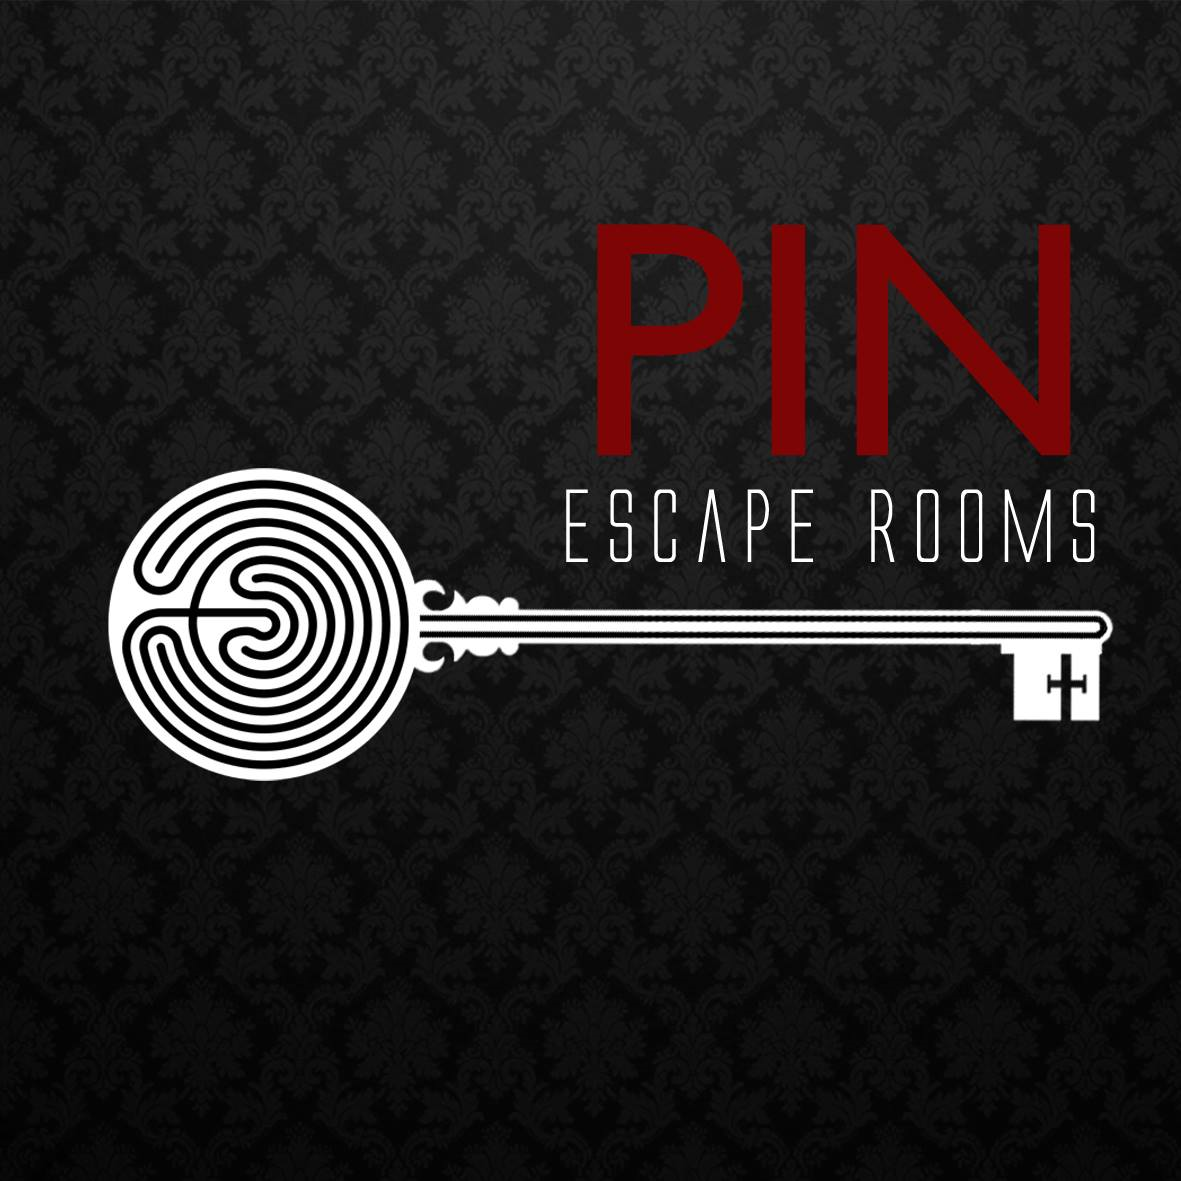 Pin Escape Rooms